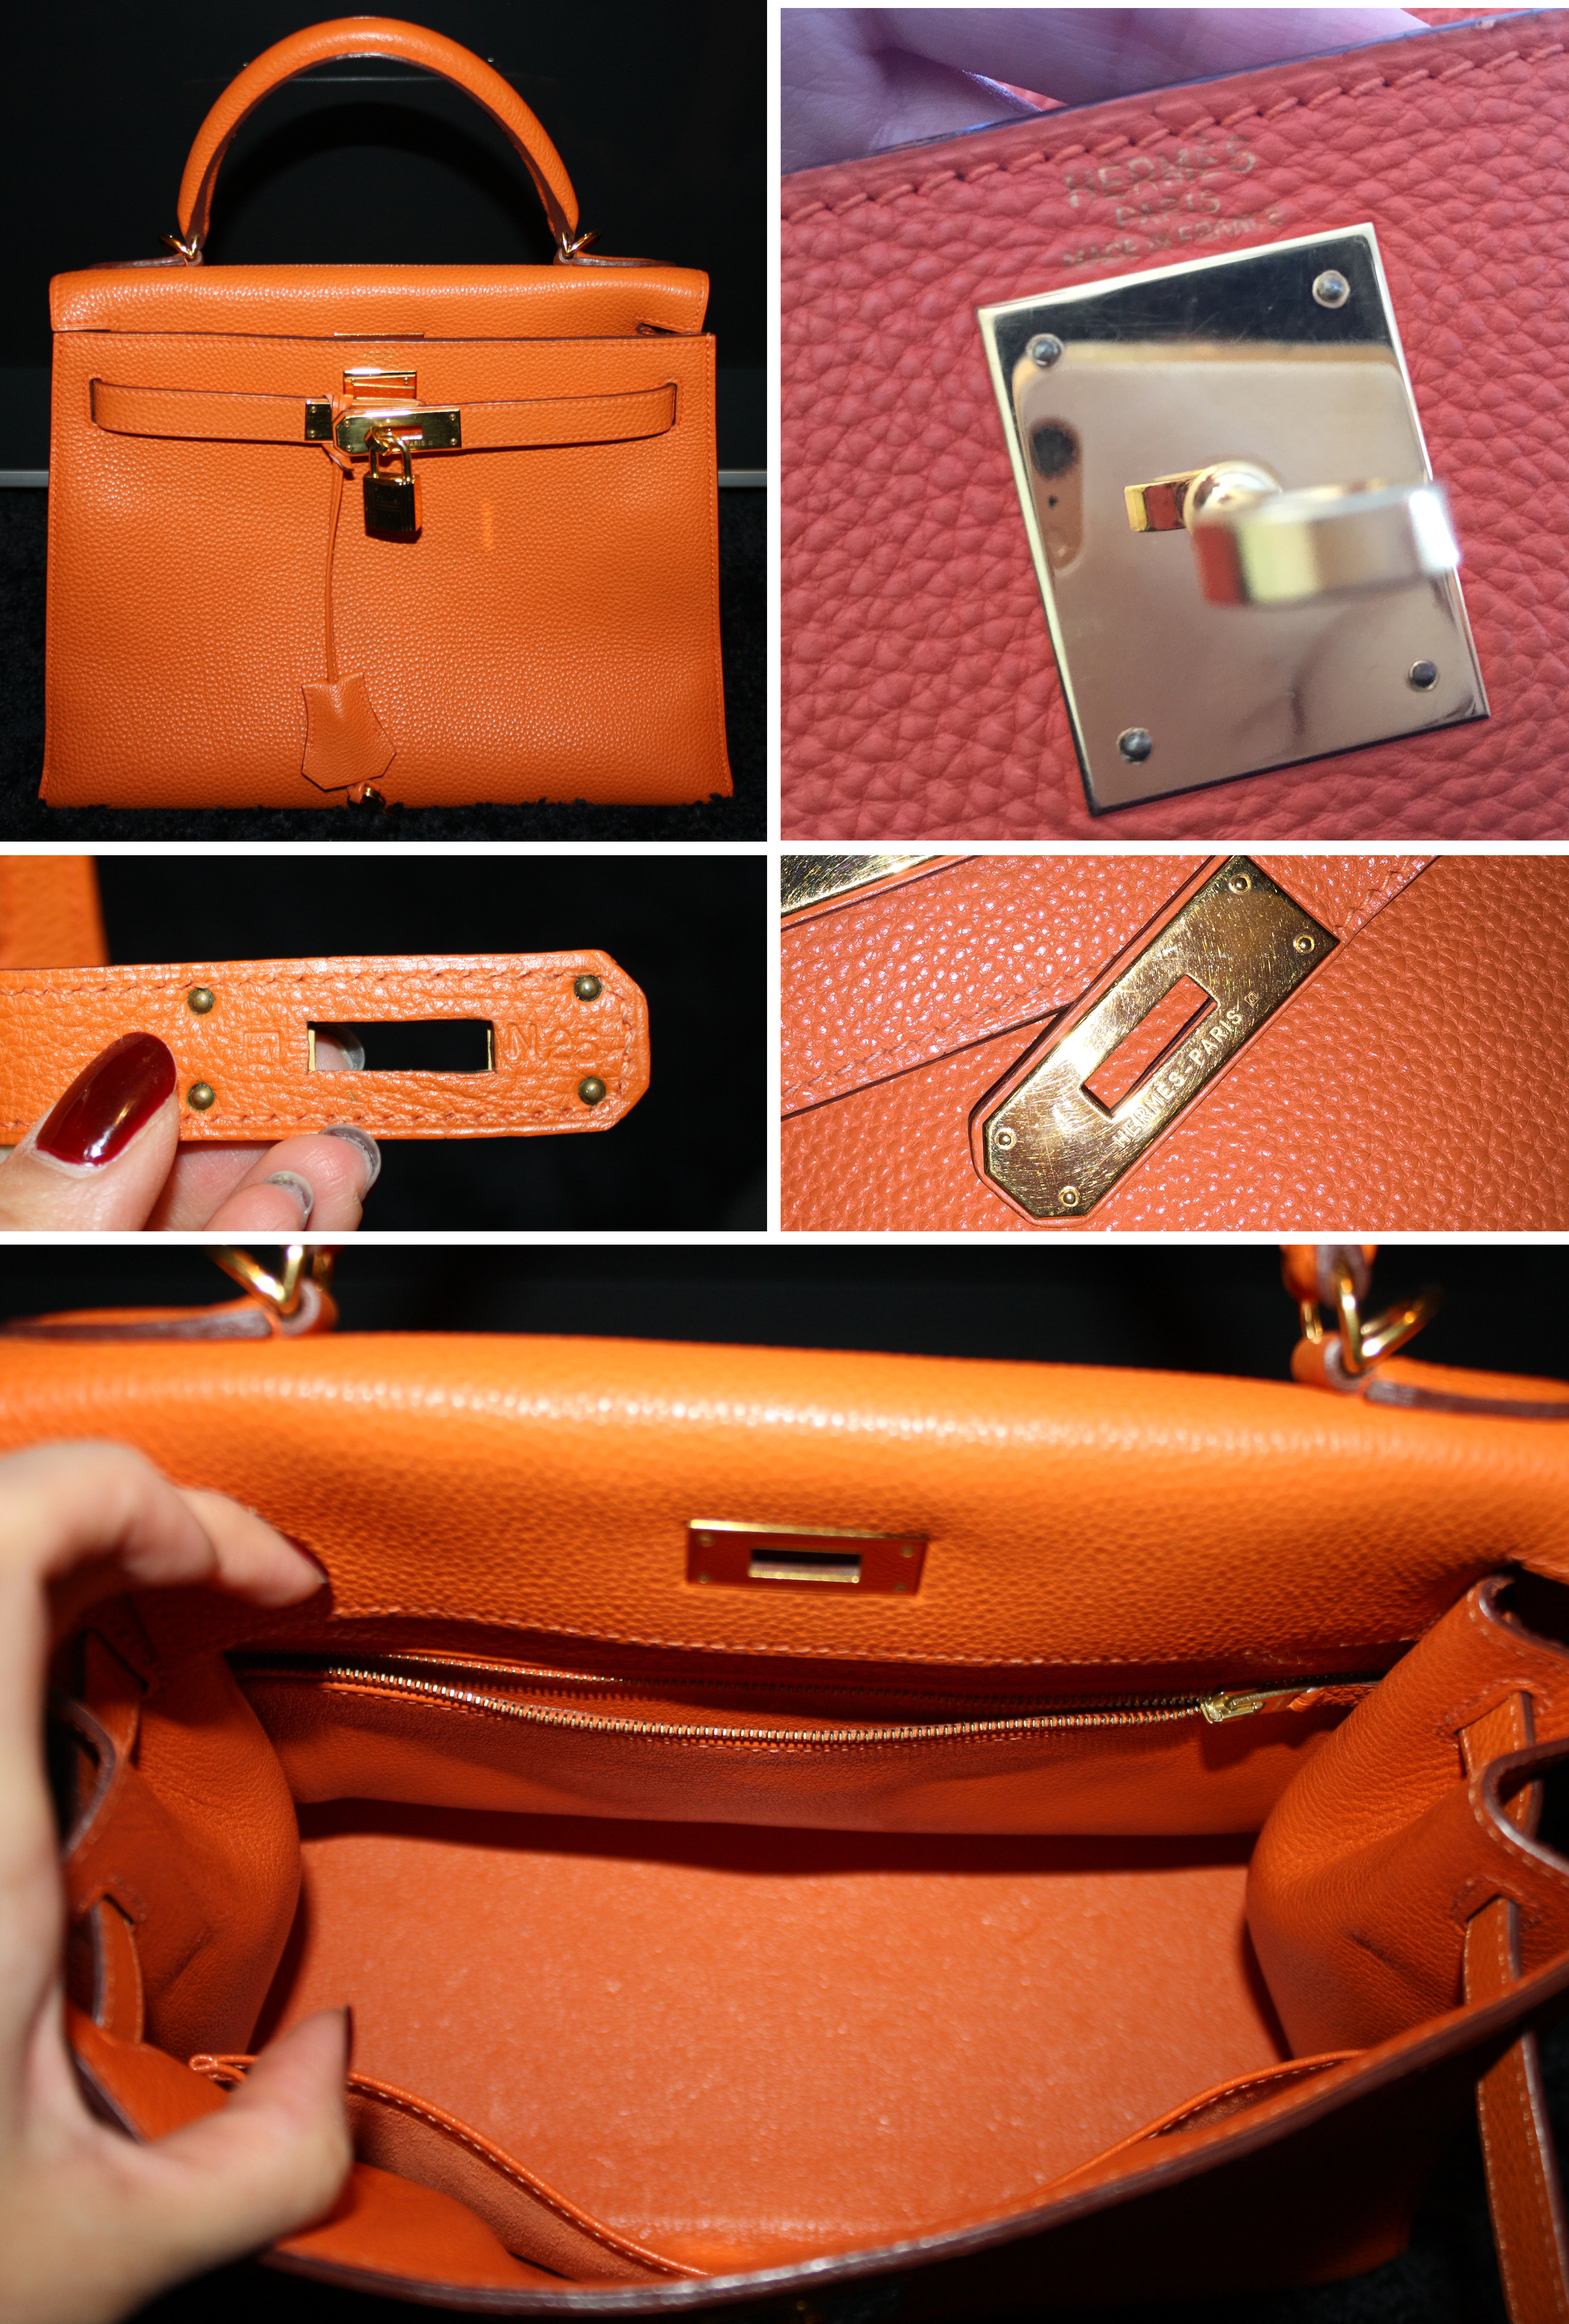 b8abd0e63d3e Is this Kelly bag authentic or counterfeit   Authentic Or Counterfeit